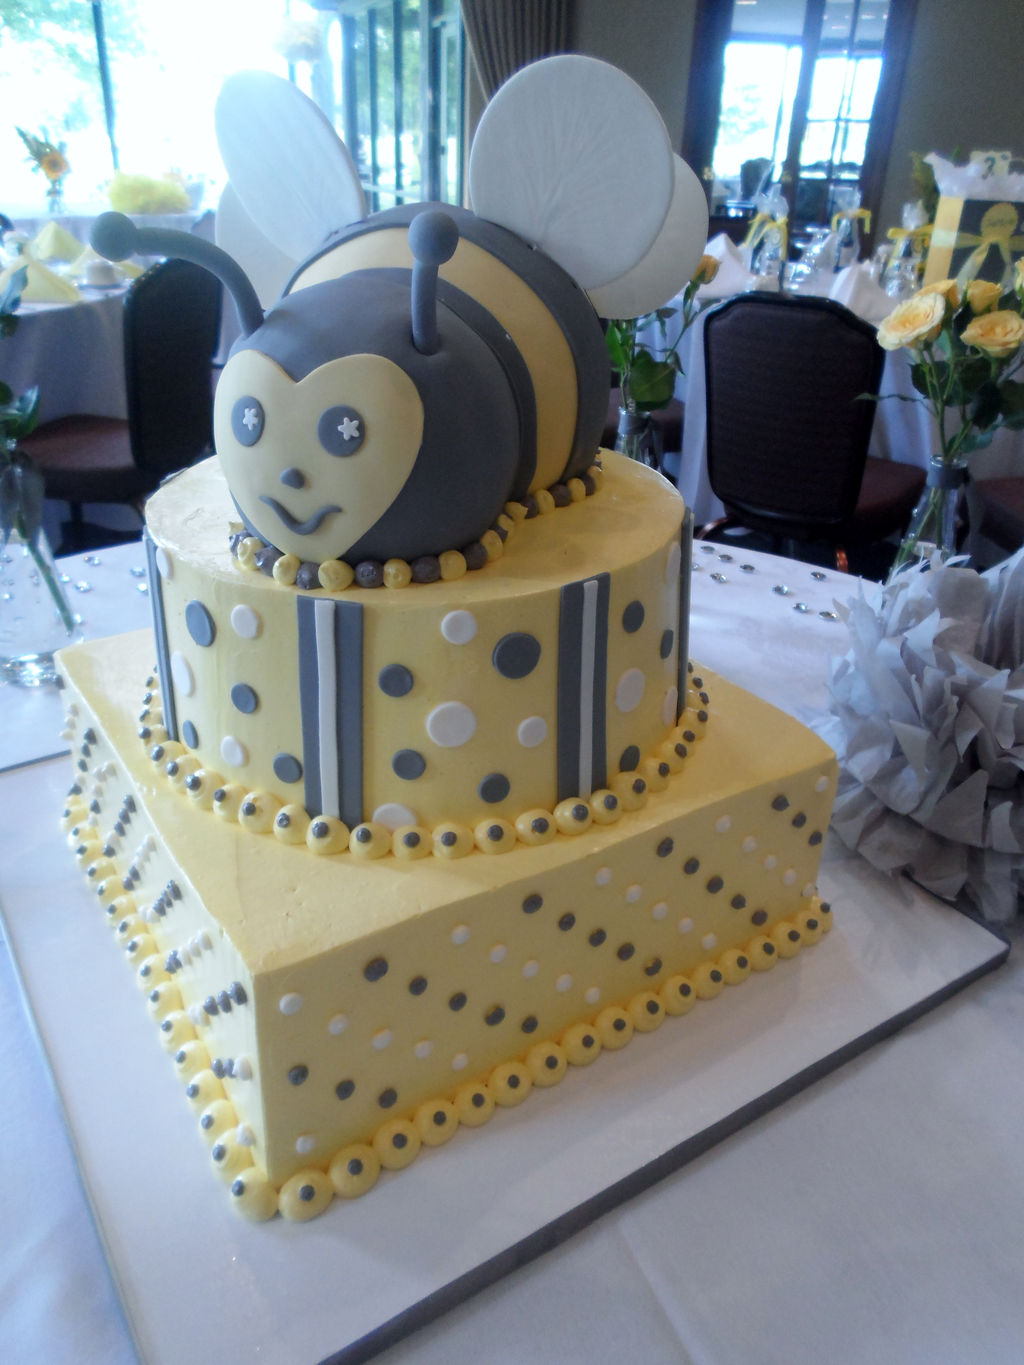 Dessert Menu Wedding Cakes Fondant Cupcakes Bumble Bee Baby Shower Cake Ptc Cofo Choice